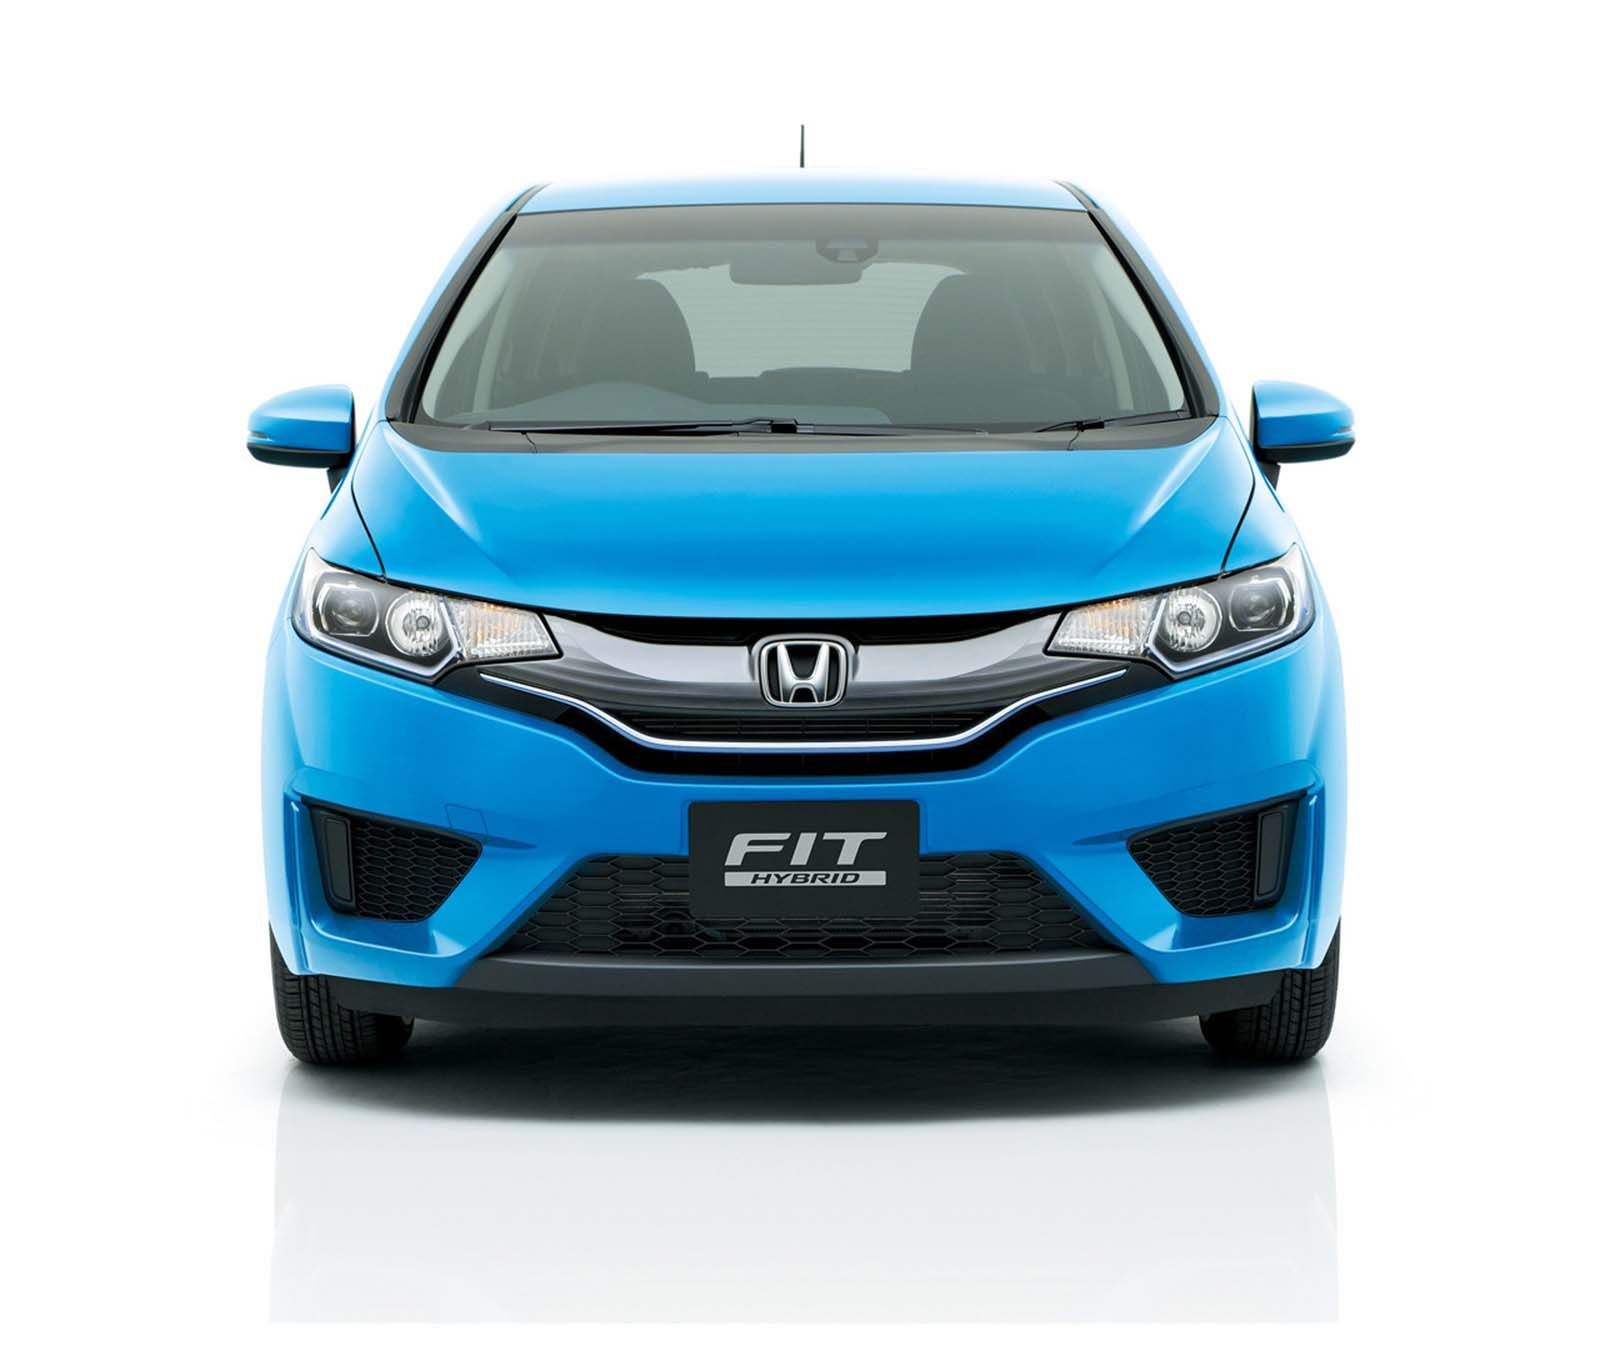 Honda has announced its new exciting h design language that features in the 2014 jazz the new honda design language will spread across its lineup